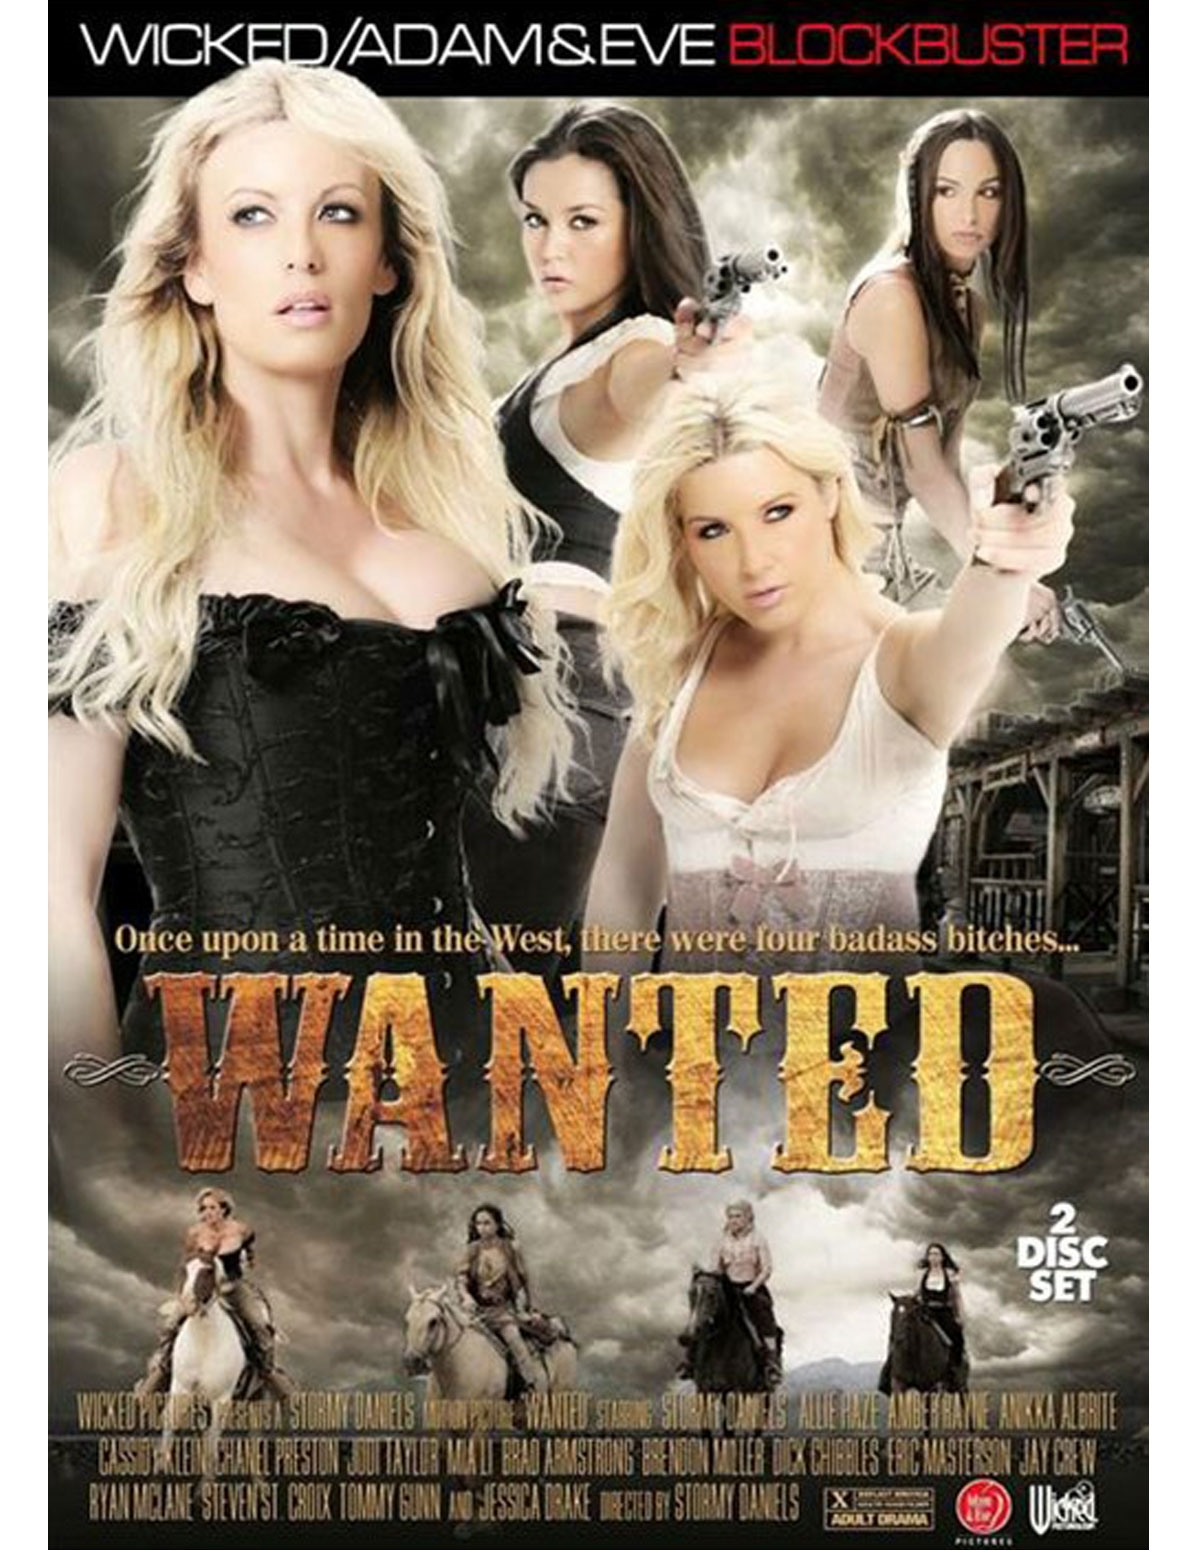 Wanted: A Movie